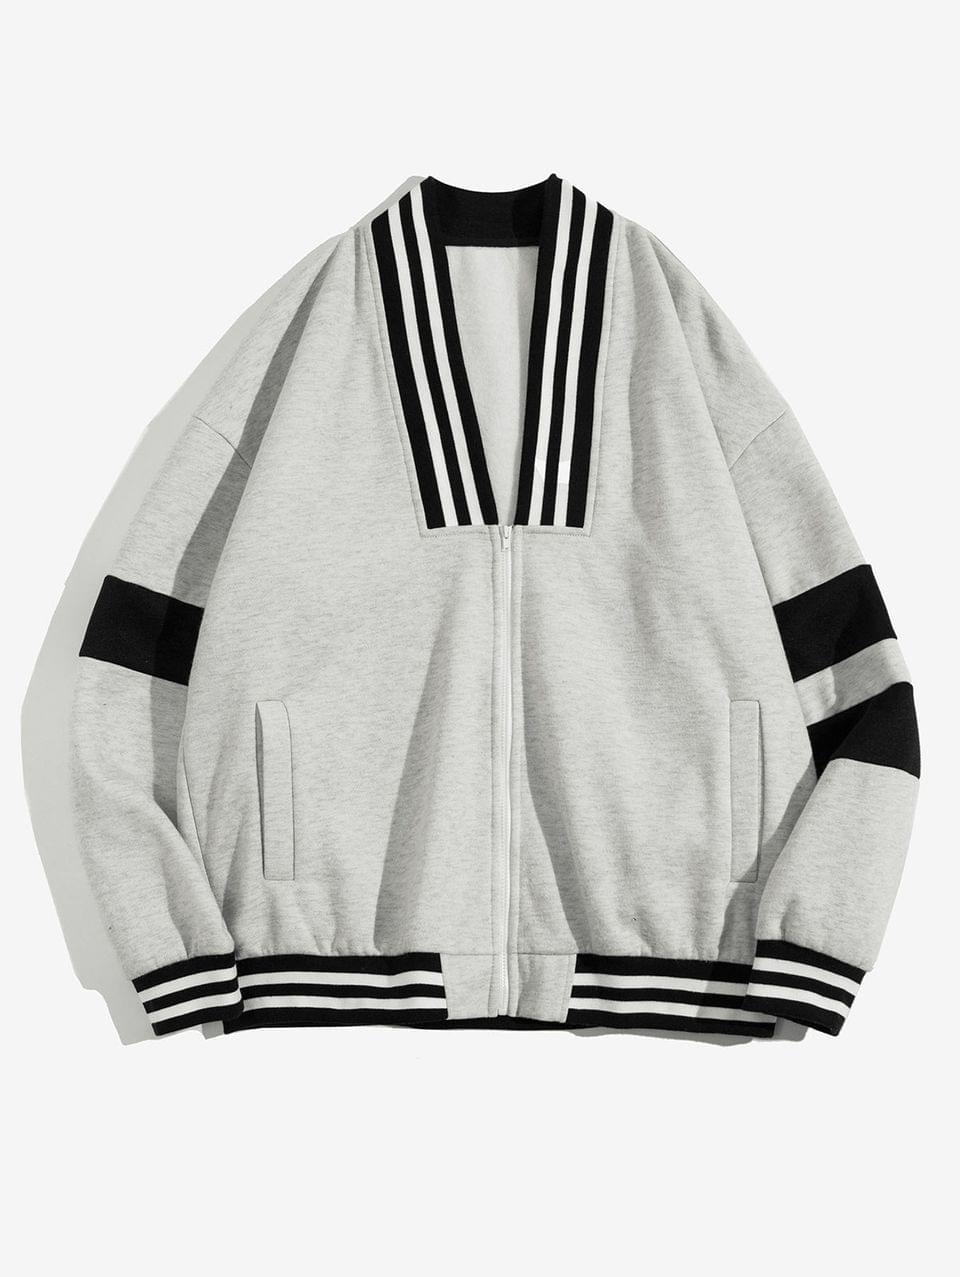 Men's Colorblock Striped Drop Shoulder Fleece Sweatshirt - Multi 2xl